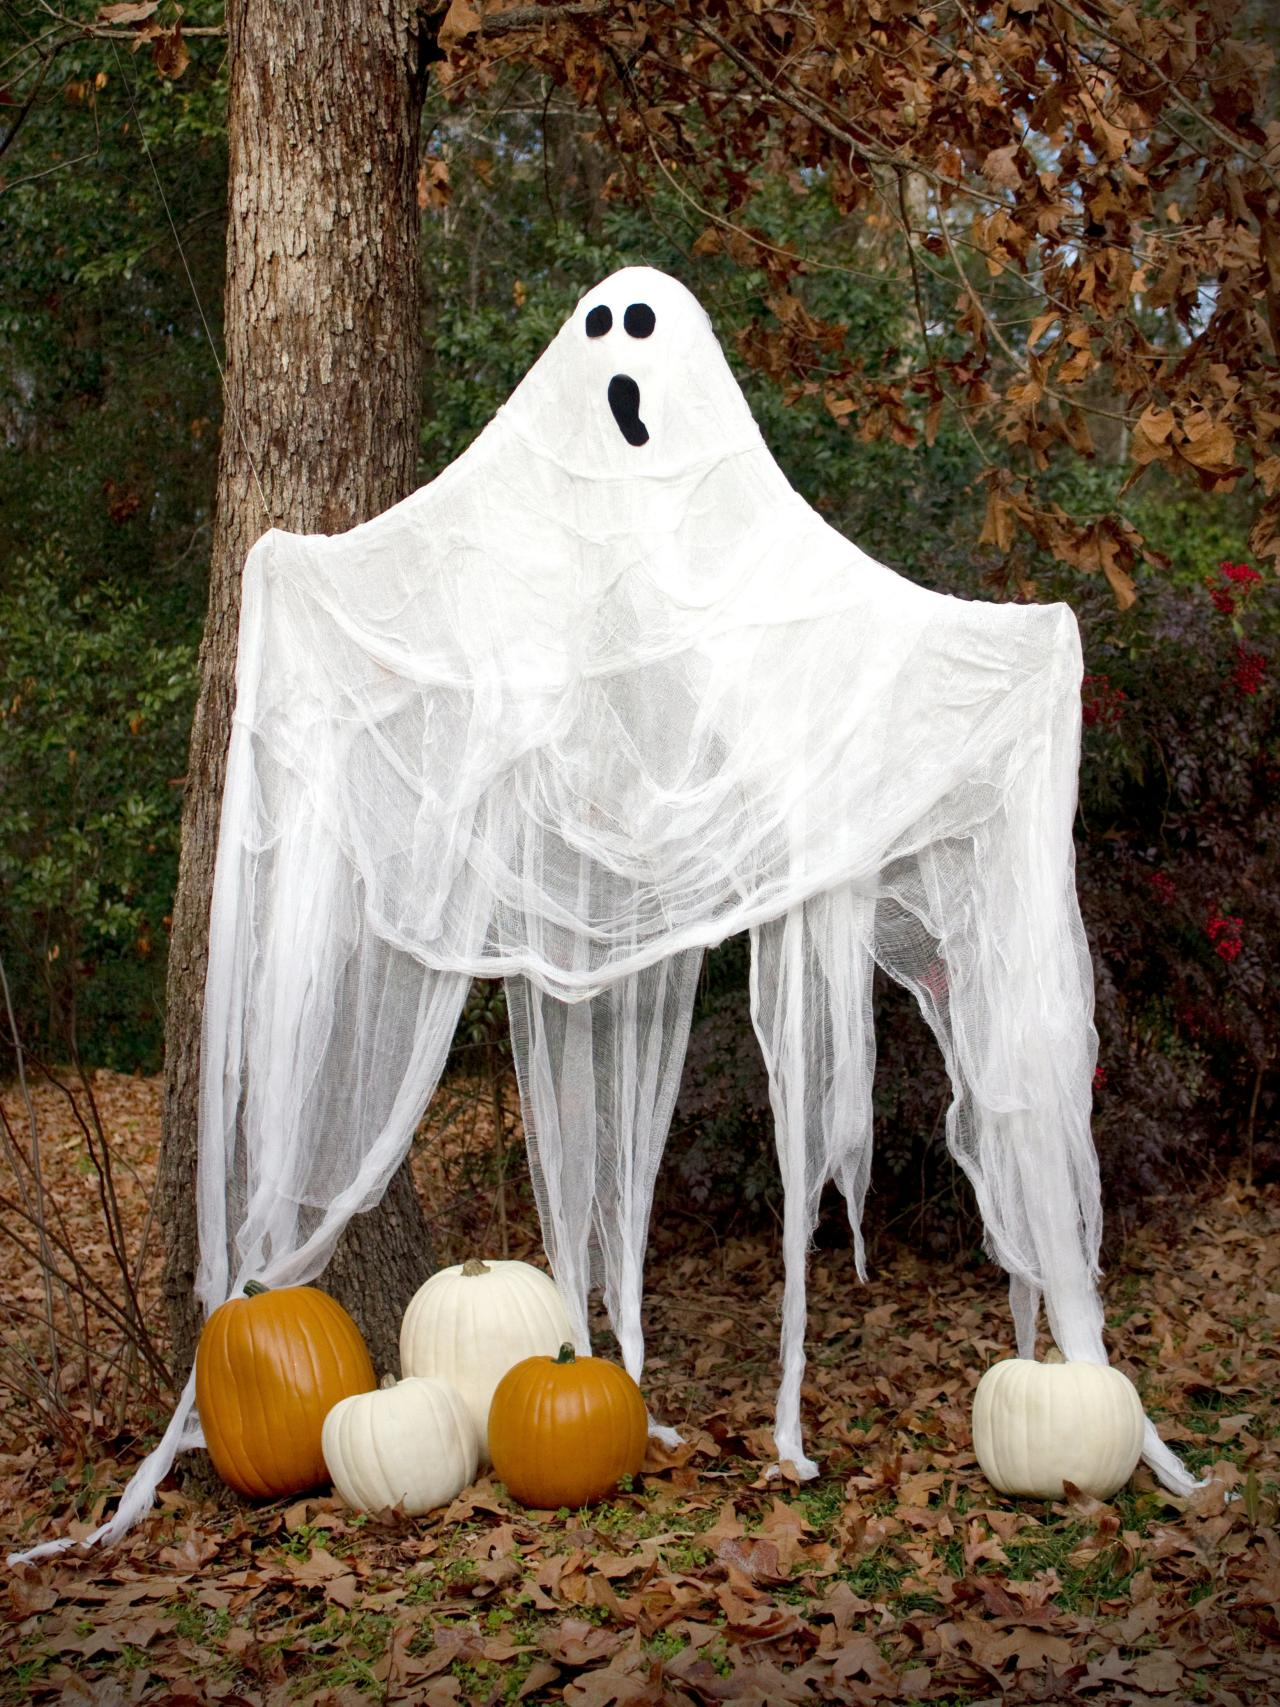 Homemade spooky halloween decorations - How To Make A Life Size Halloween Ghost